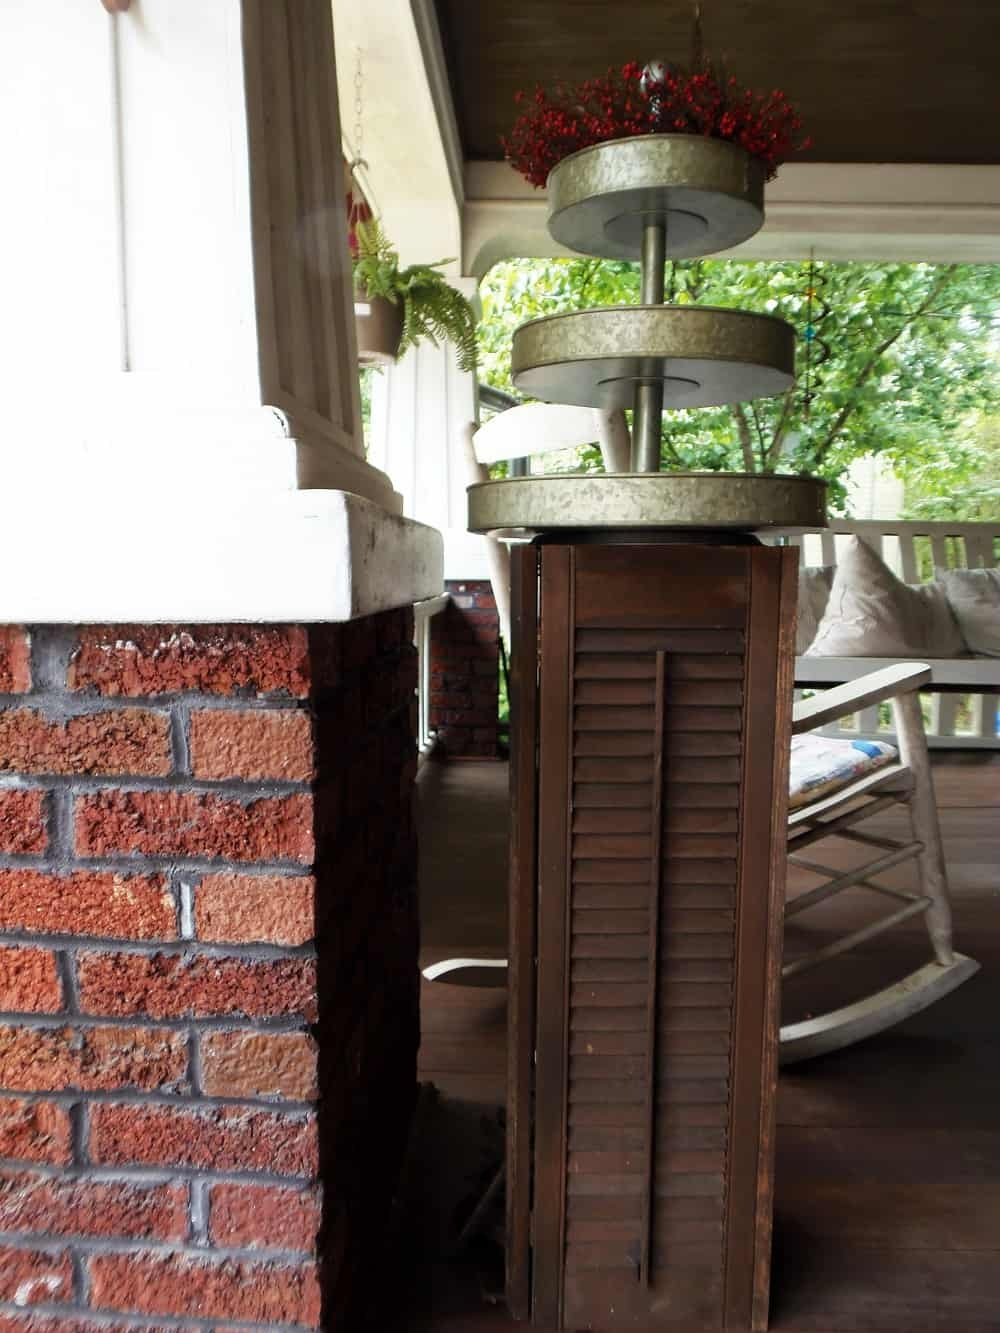 Pedestal Made Out of Shutters